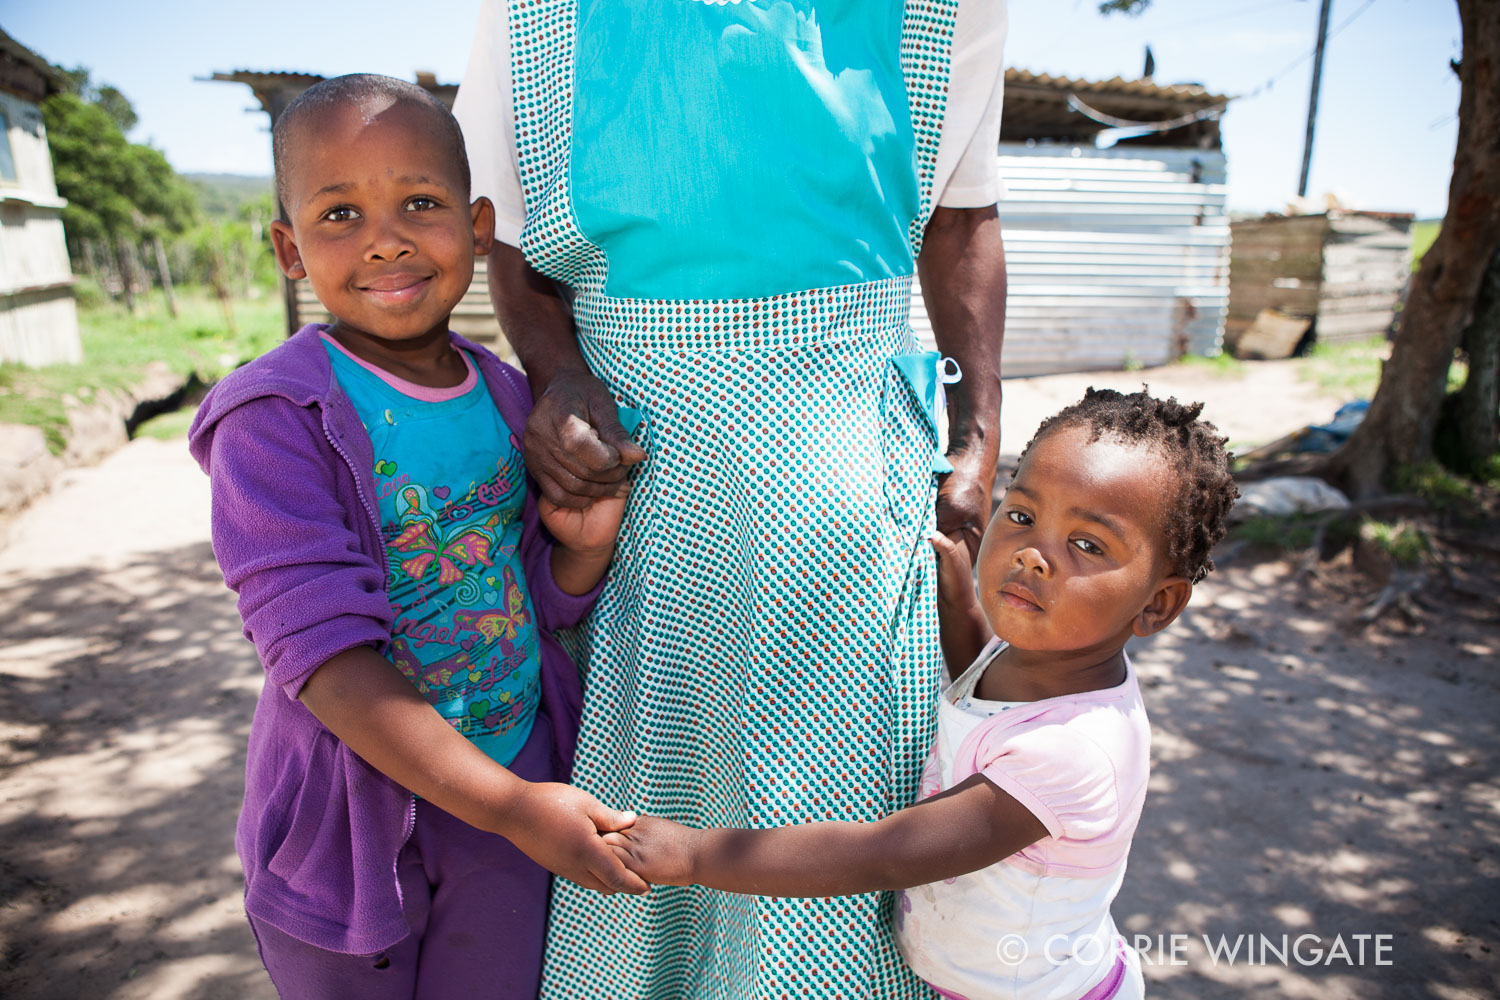 An gogo-getter who takes care of her grandchildren. Sisonke project, South Africa